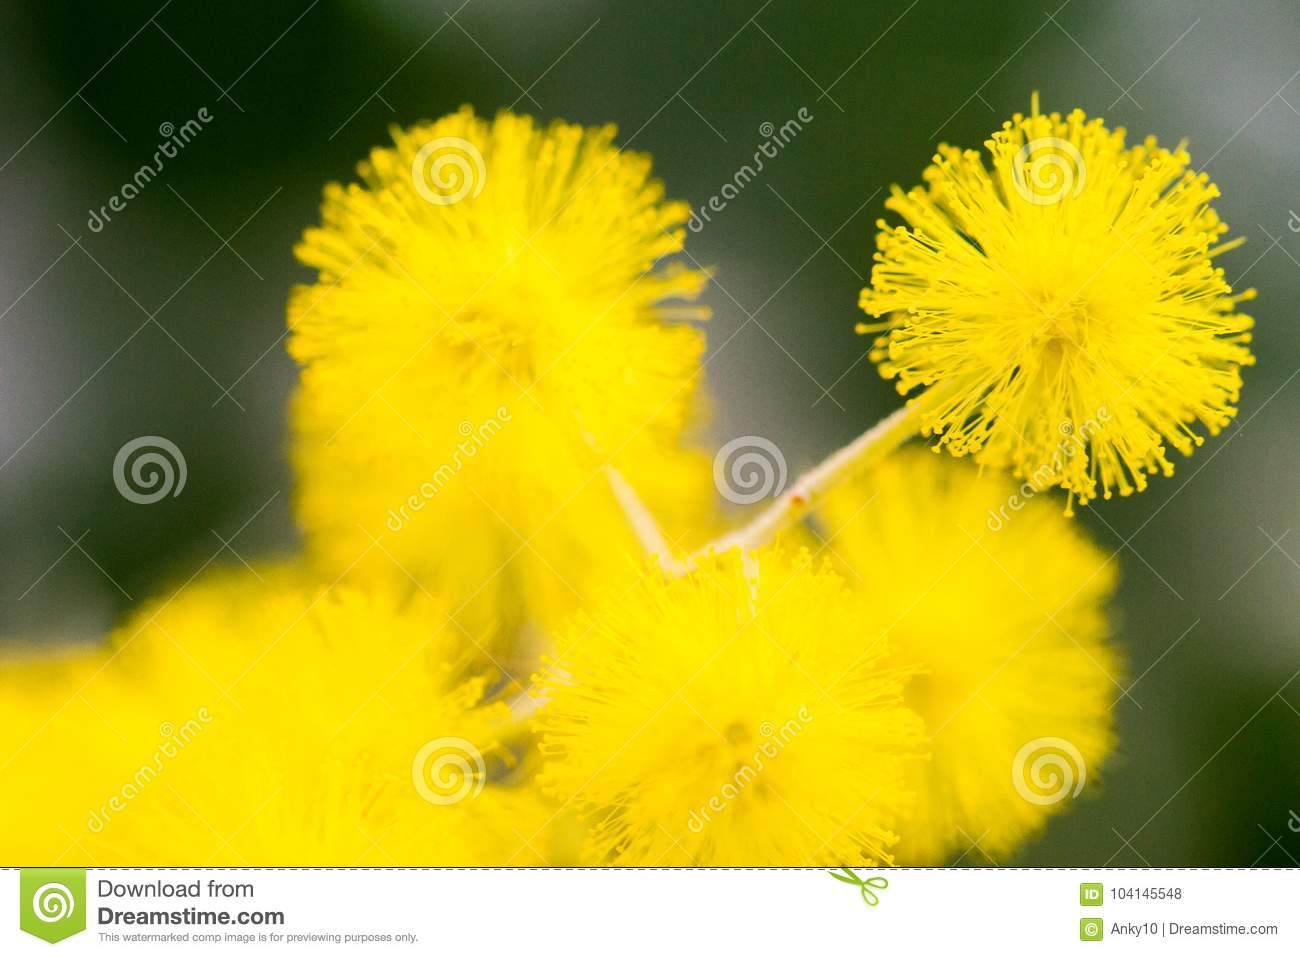 Yellow ball flowers indoors over dark background stock photo image download yellow ball flowers indoors over dark background stock photo image of detail bunch mightylinksfo